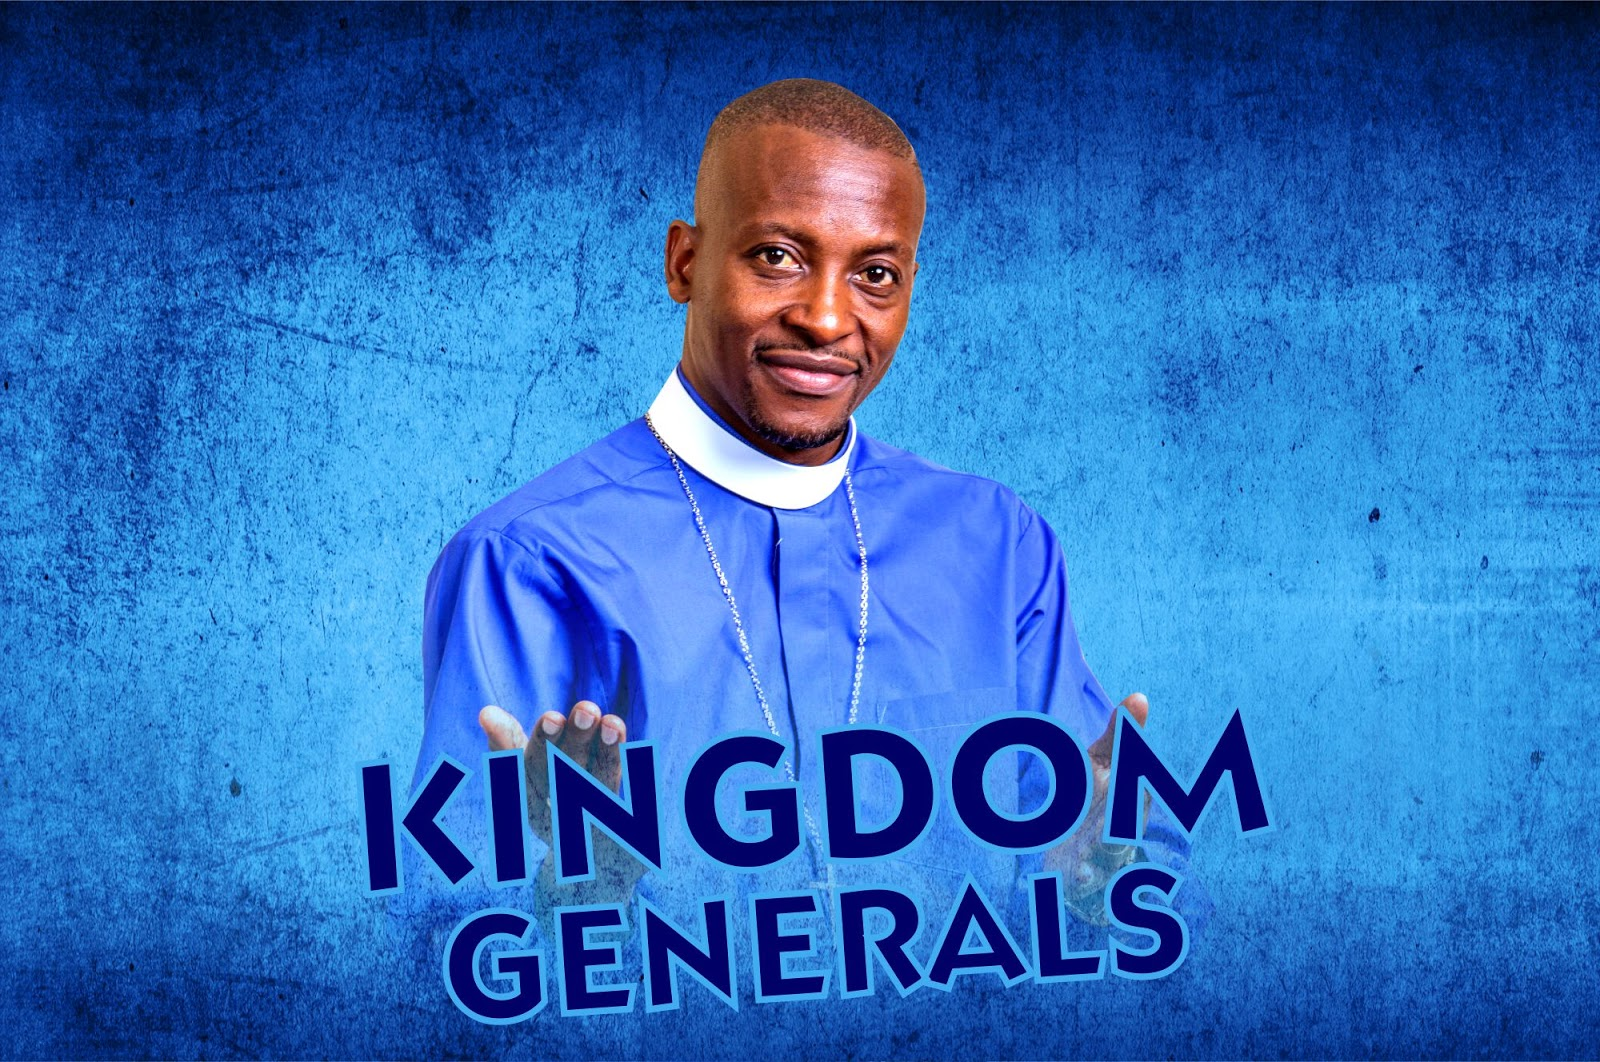 God's Generals Series - Men and Women Used of God!